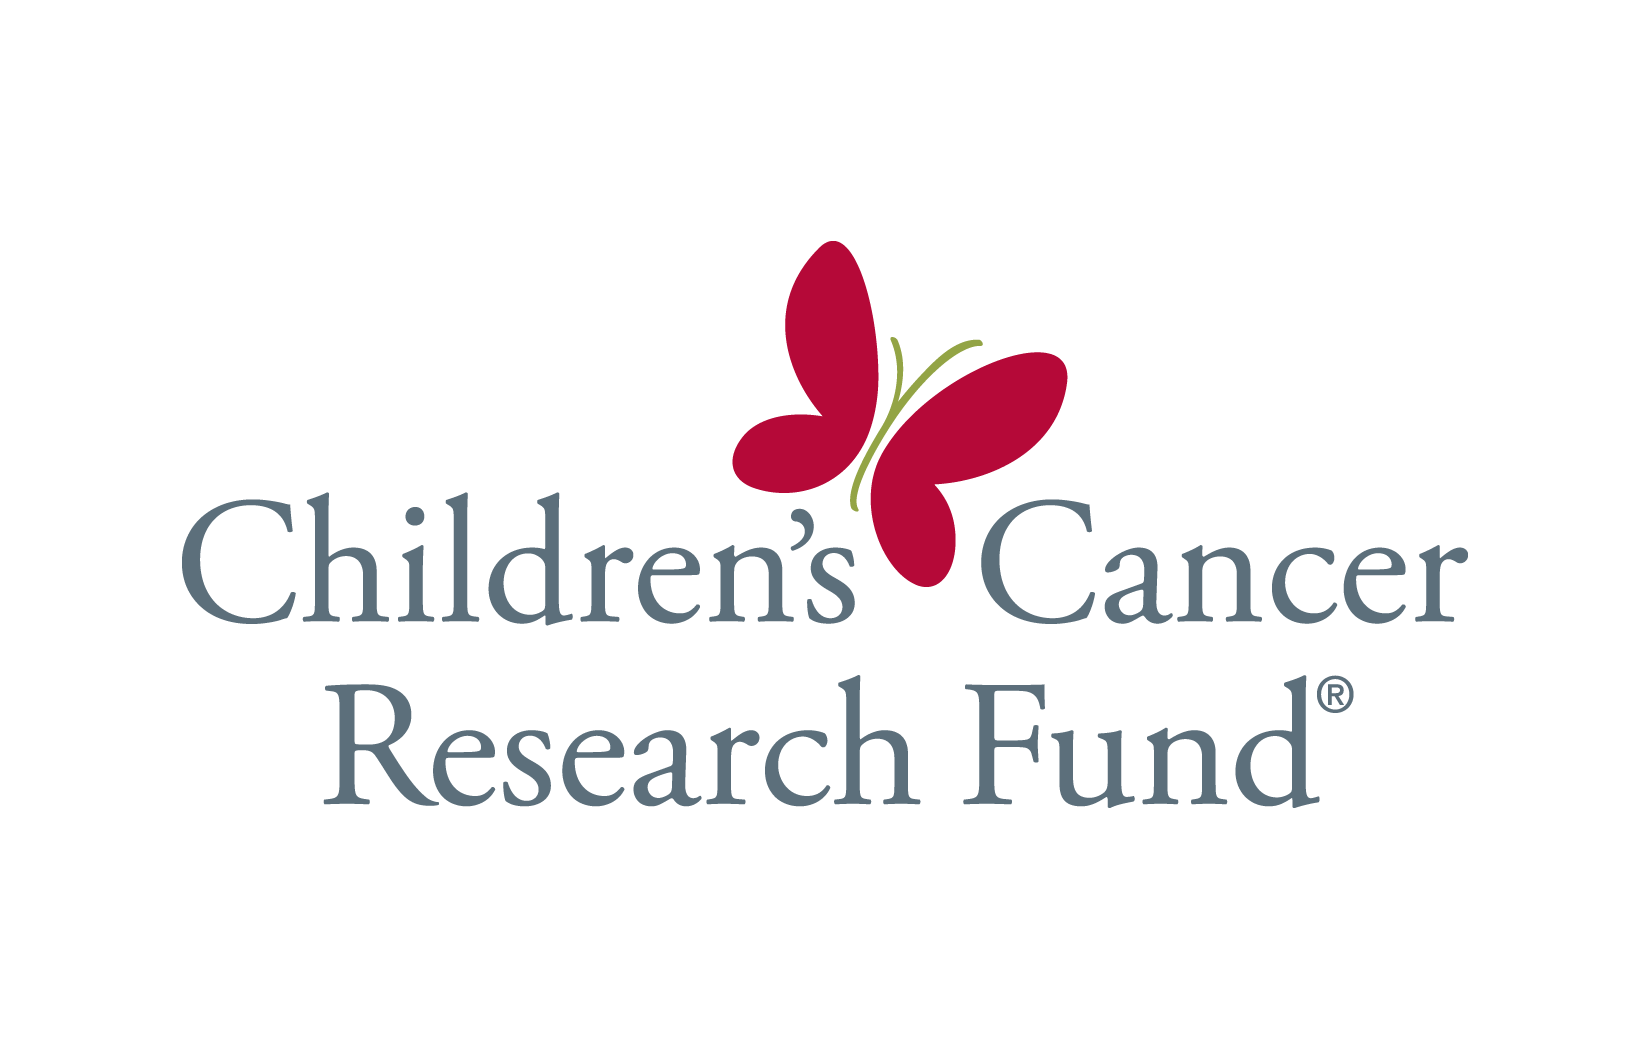 The Children's Cancer Research Fund